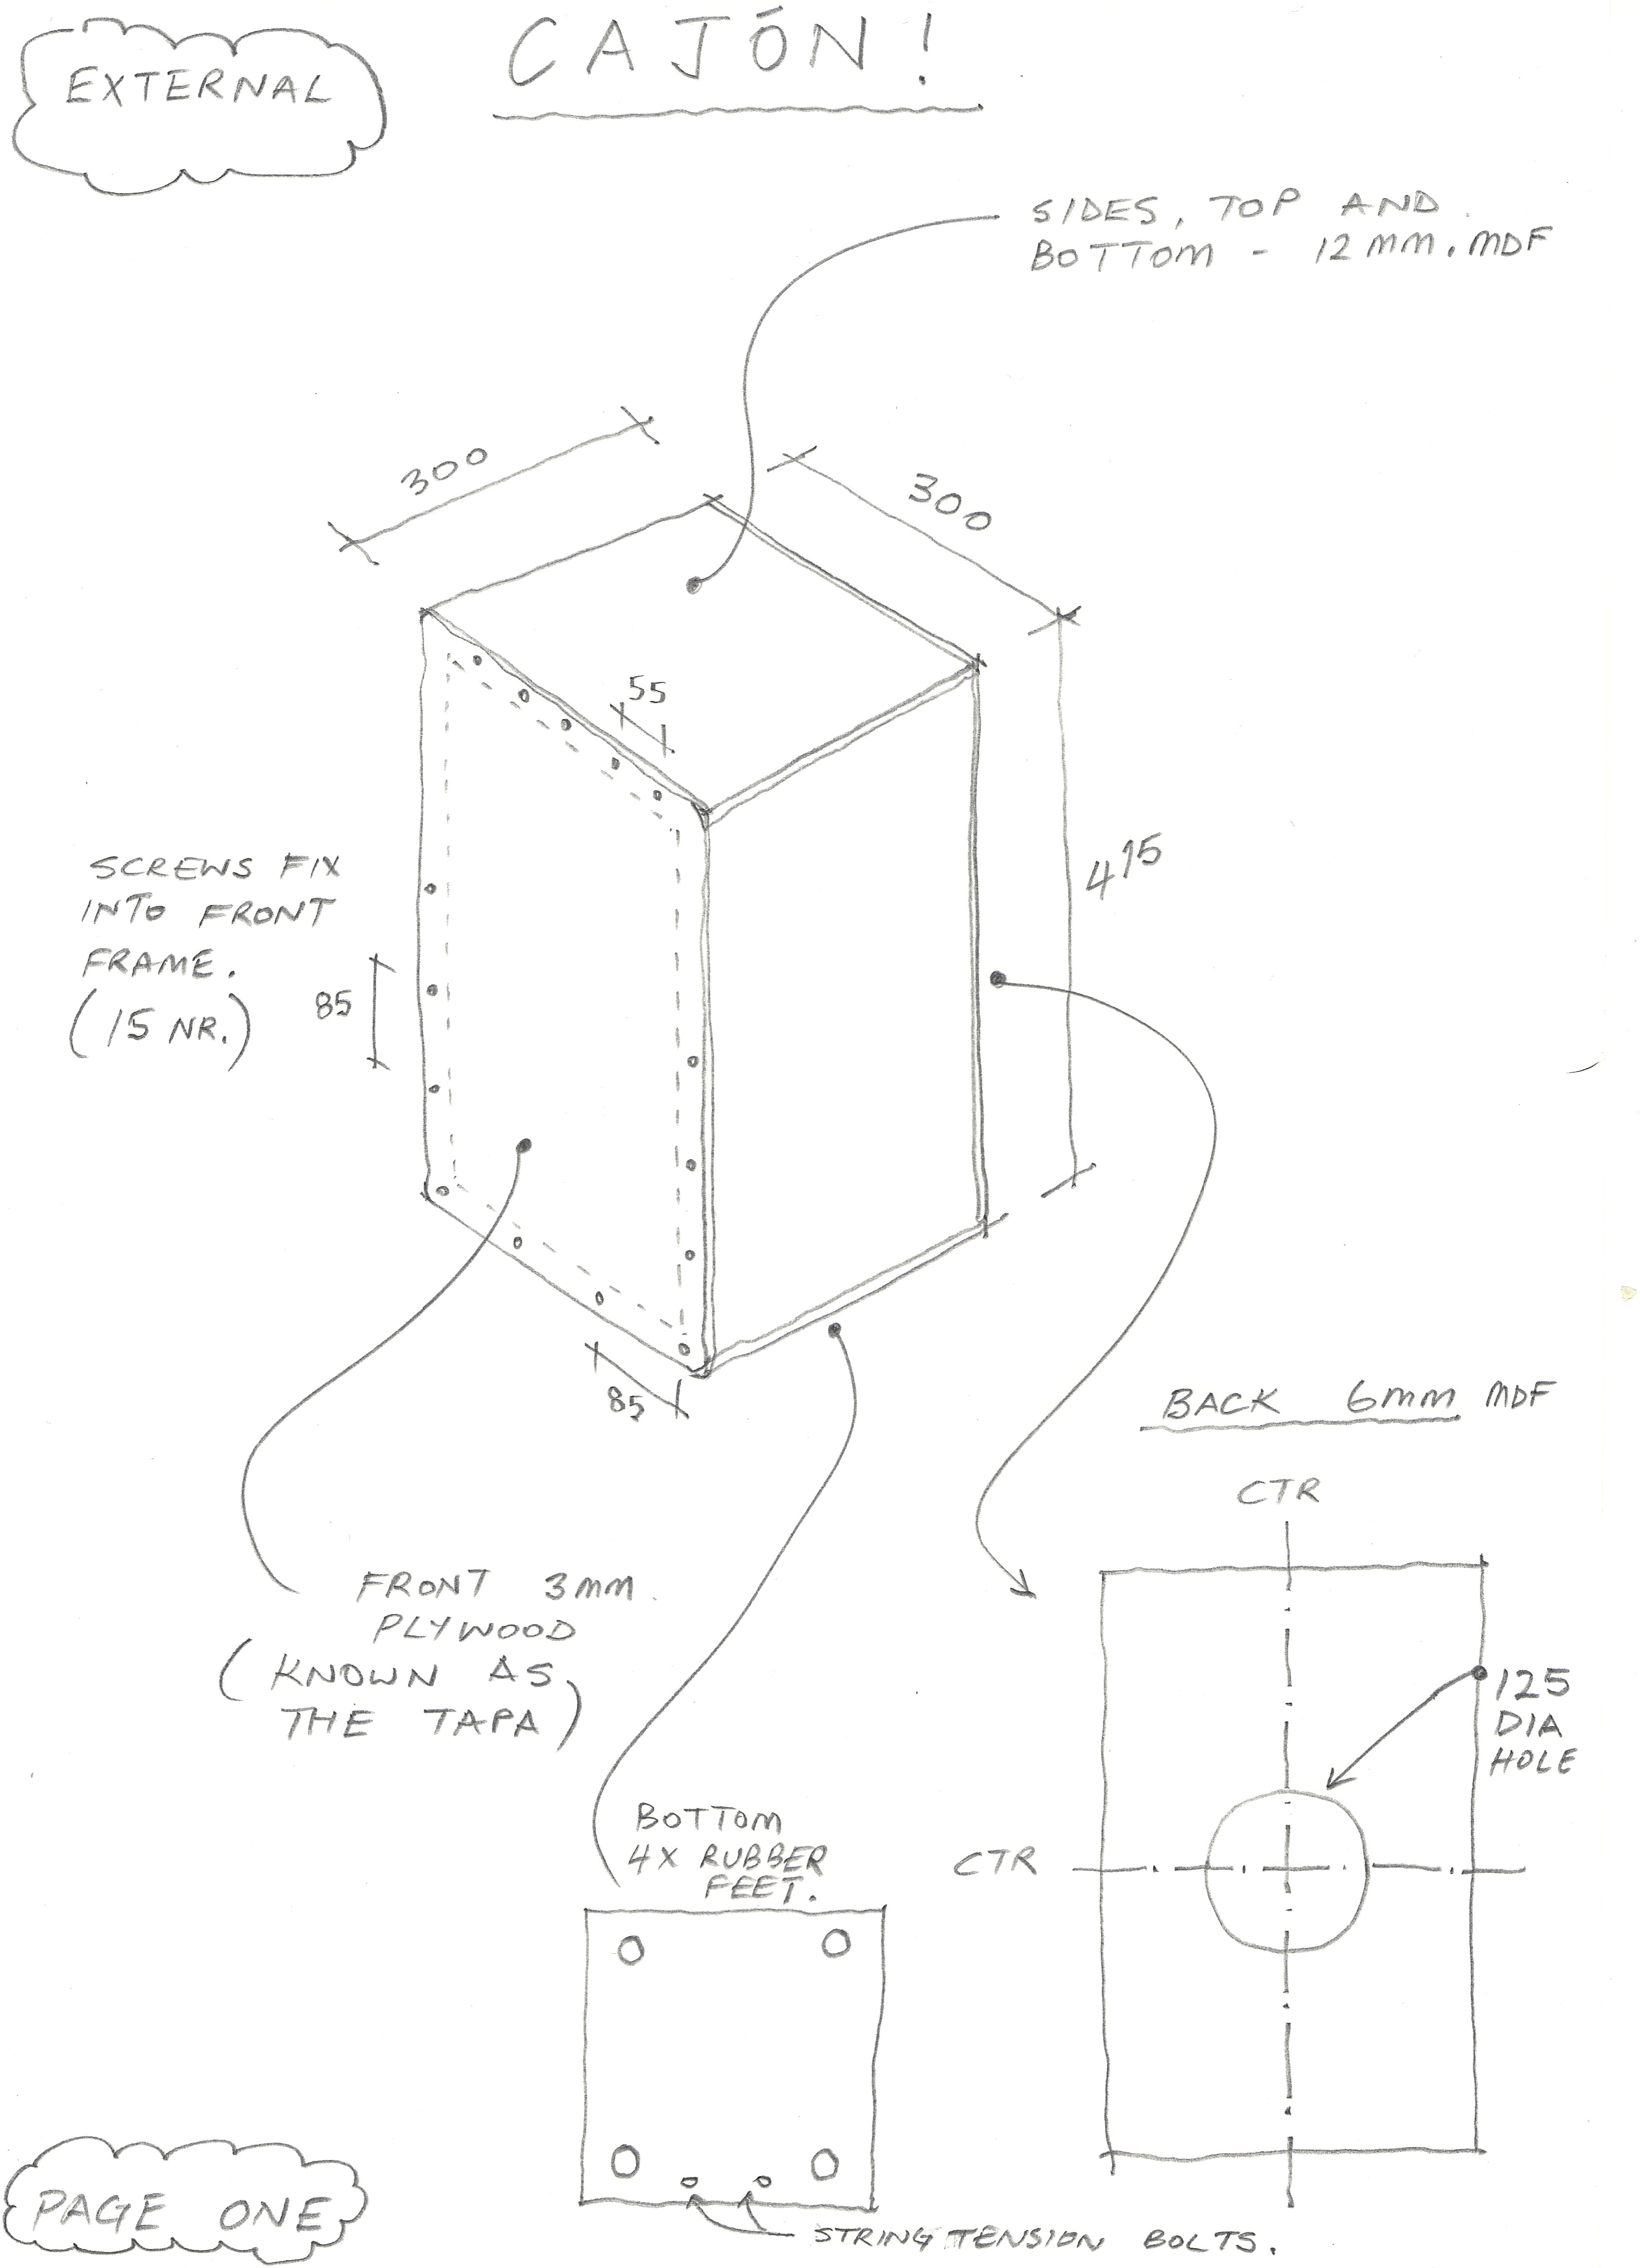 handmade cajon diagram